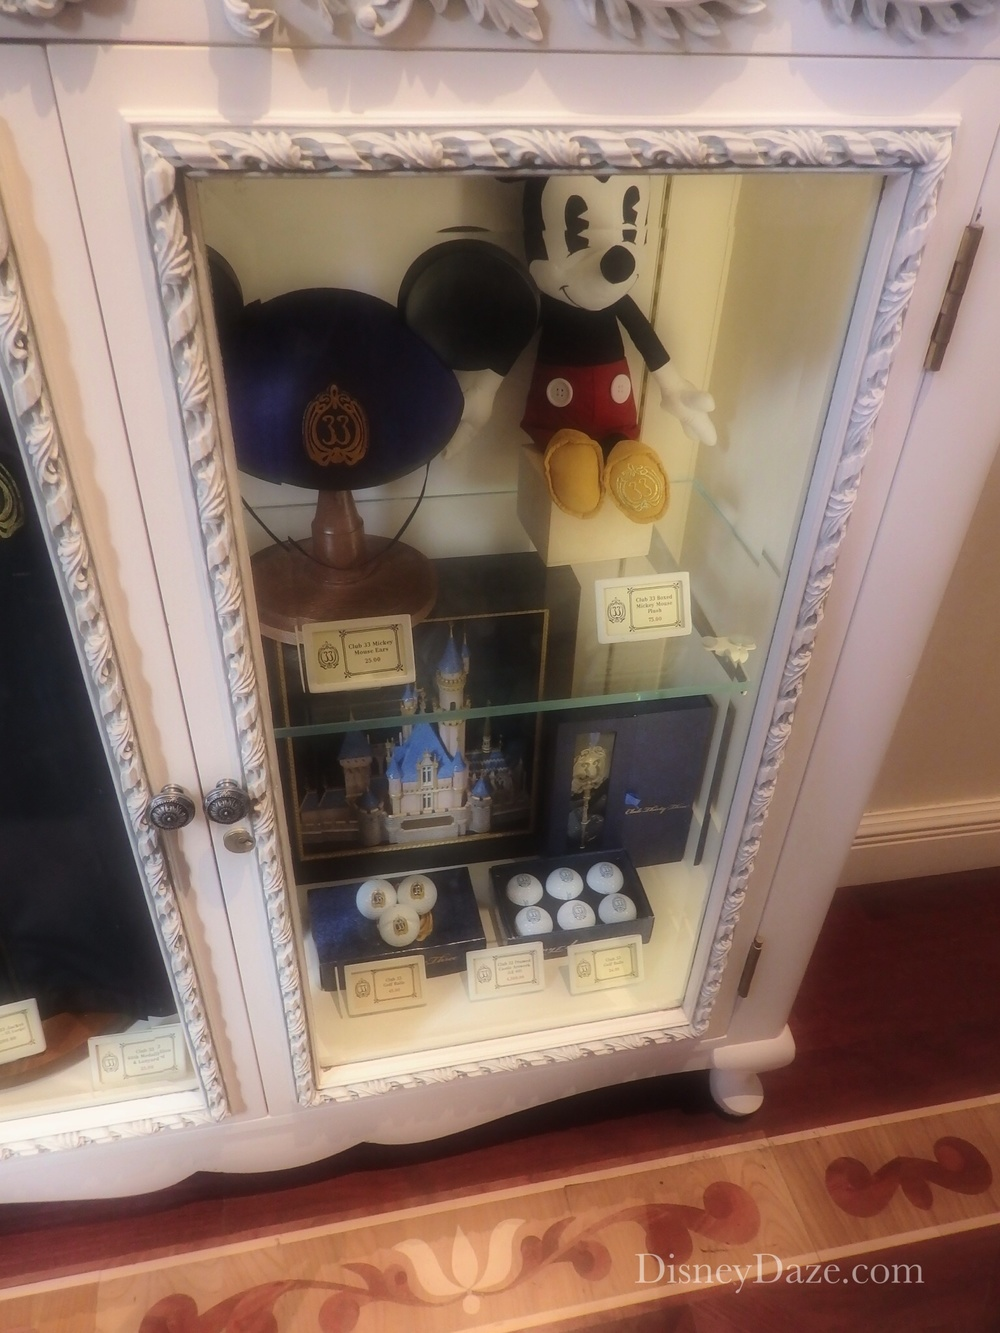 Club 33 Merch Display located on first floor, by entry door.